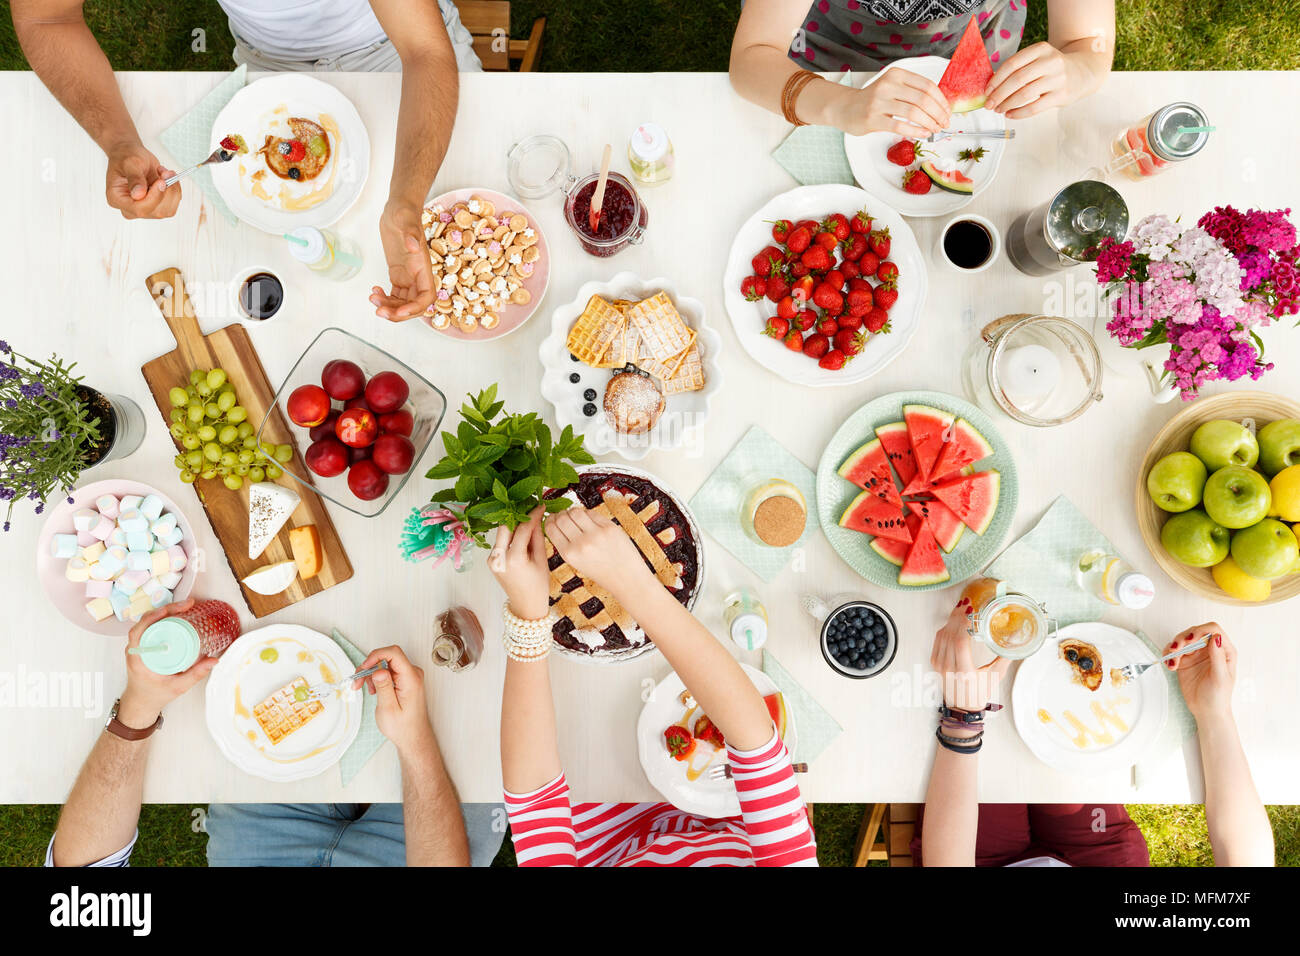 Young people sharing food in the garden eating fruit, pie, cheese with flowers and candle on the table - Stock Image